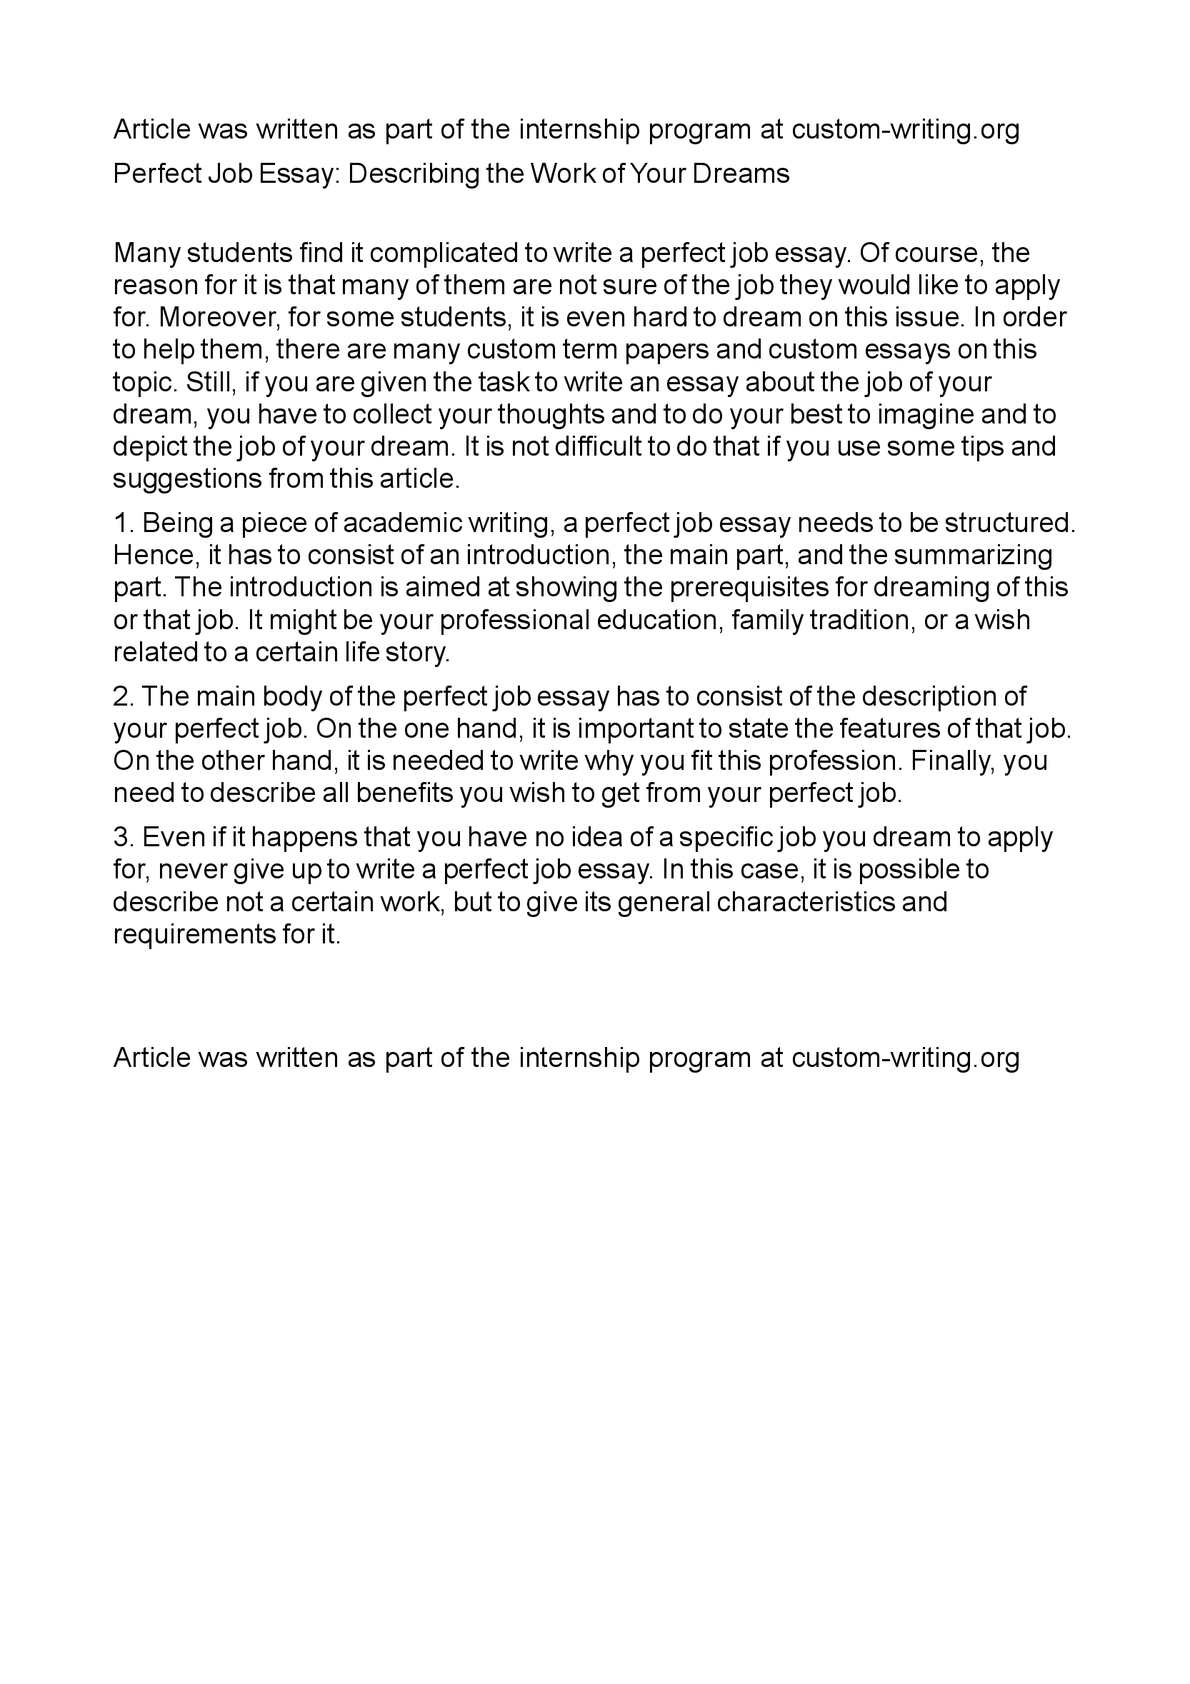 009 American Dream Essay Outline Life Natural And Legal Righ Great Gatsby Death Of Salesman Unbelievable Lucid Conclusion College Examples Introduction Full